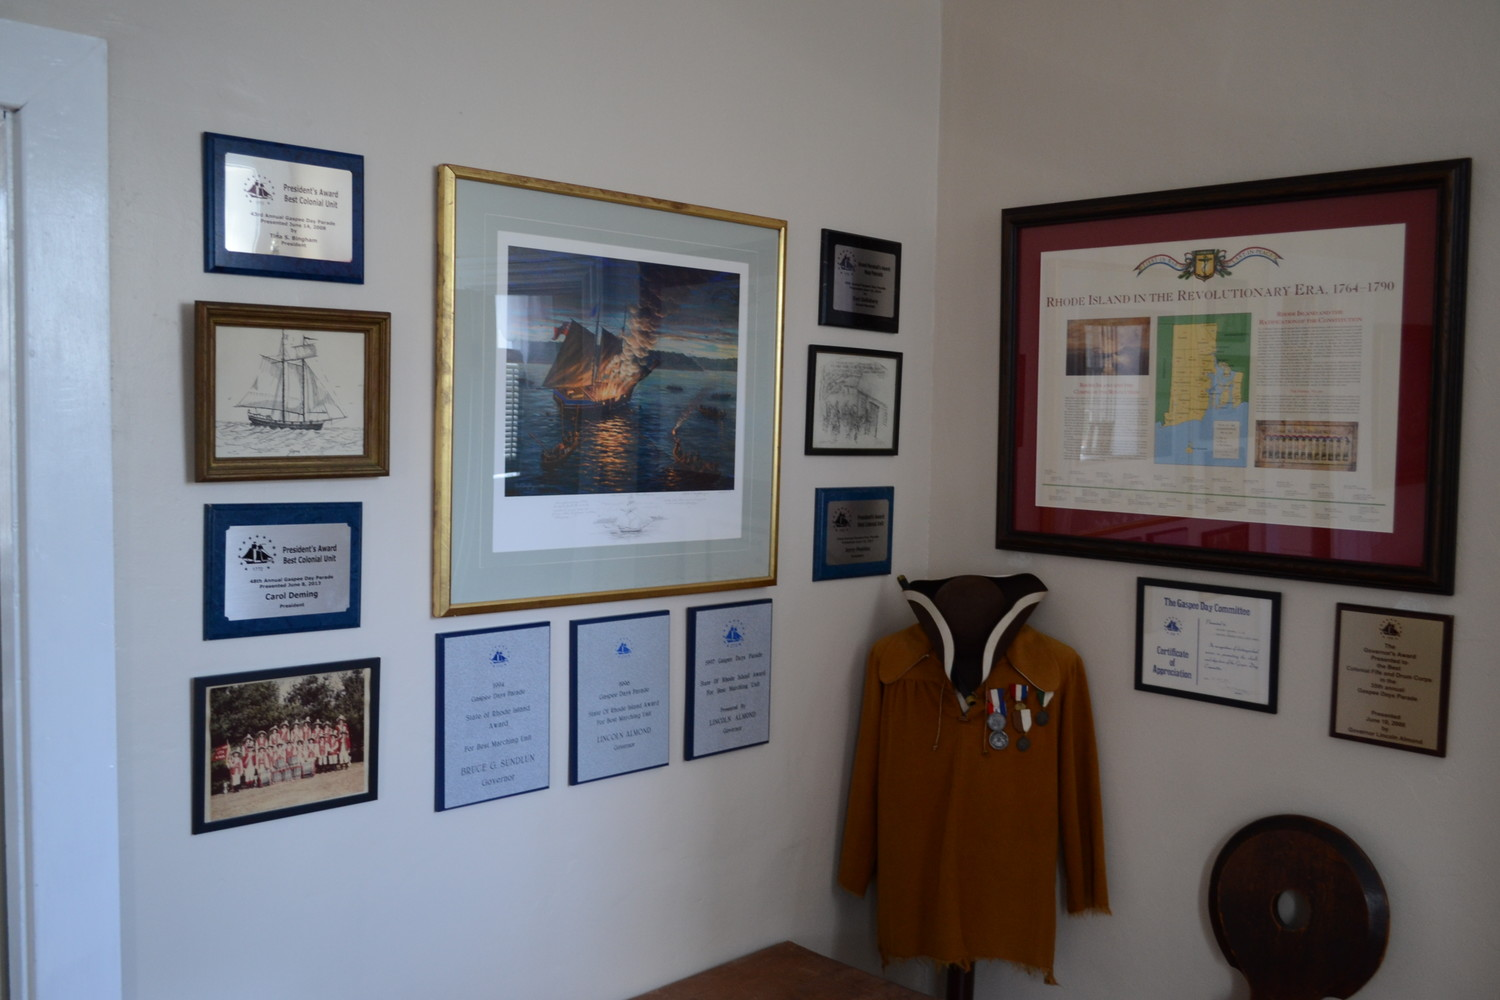 LEARNING OF THE GASPEE: An entire portion of an upstairs room is dedicated to teaching about the burning of the Gaspee, and includes paintings and historical artifacts.